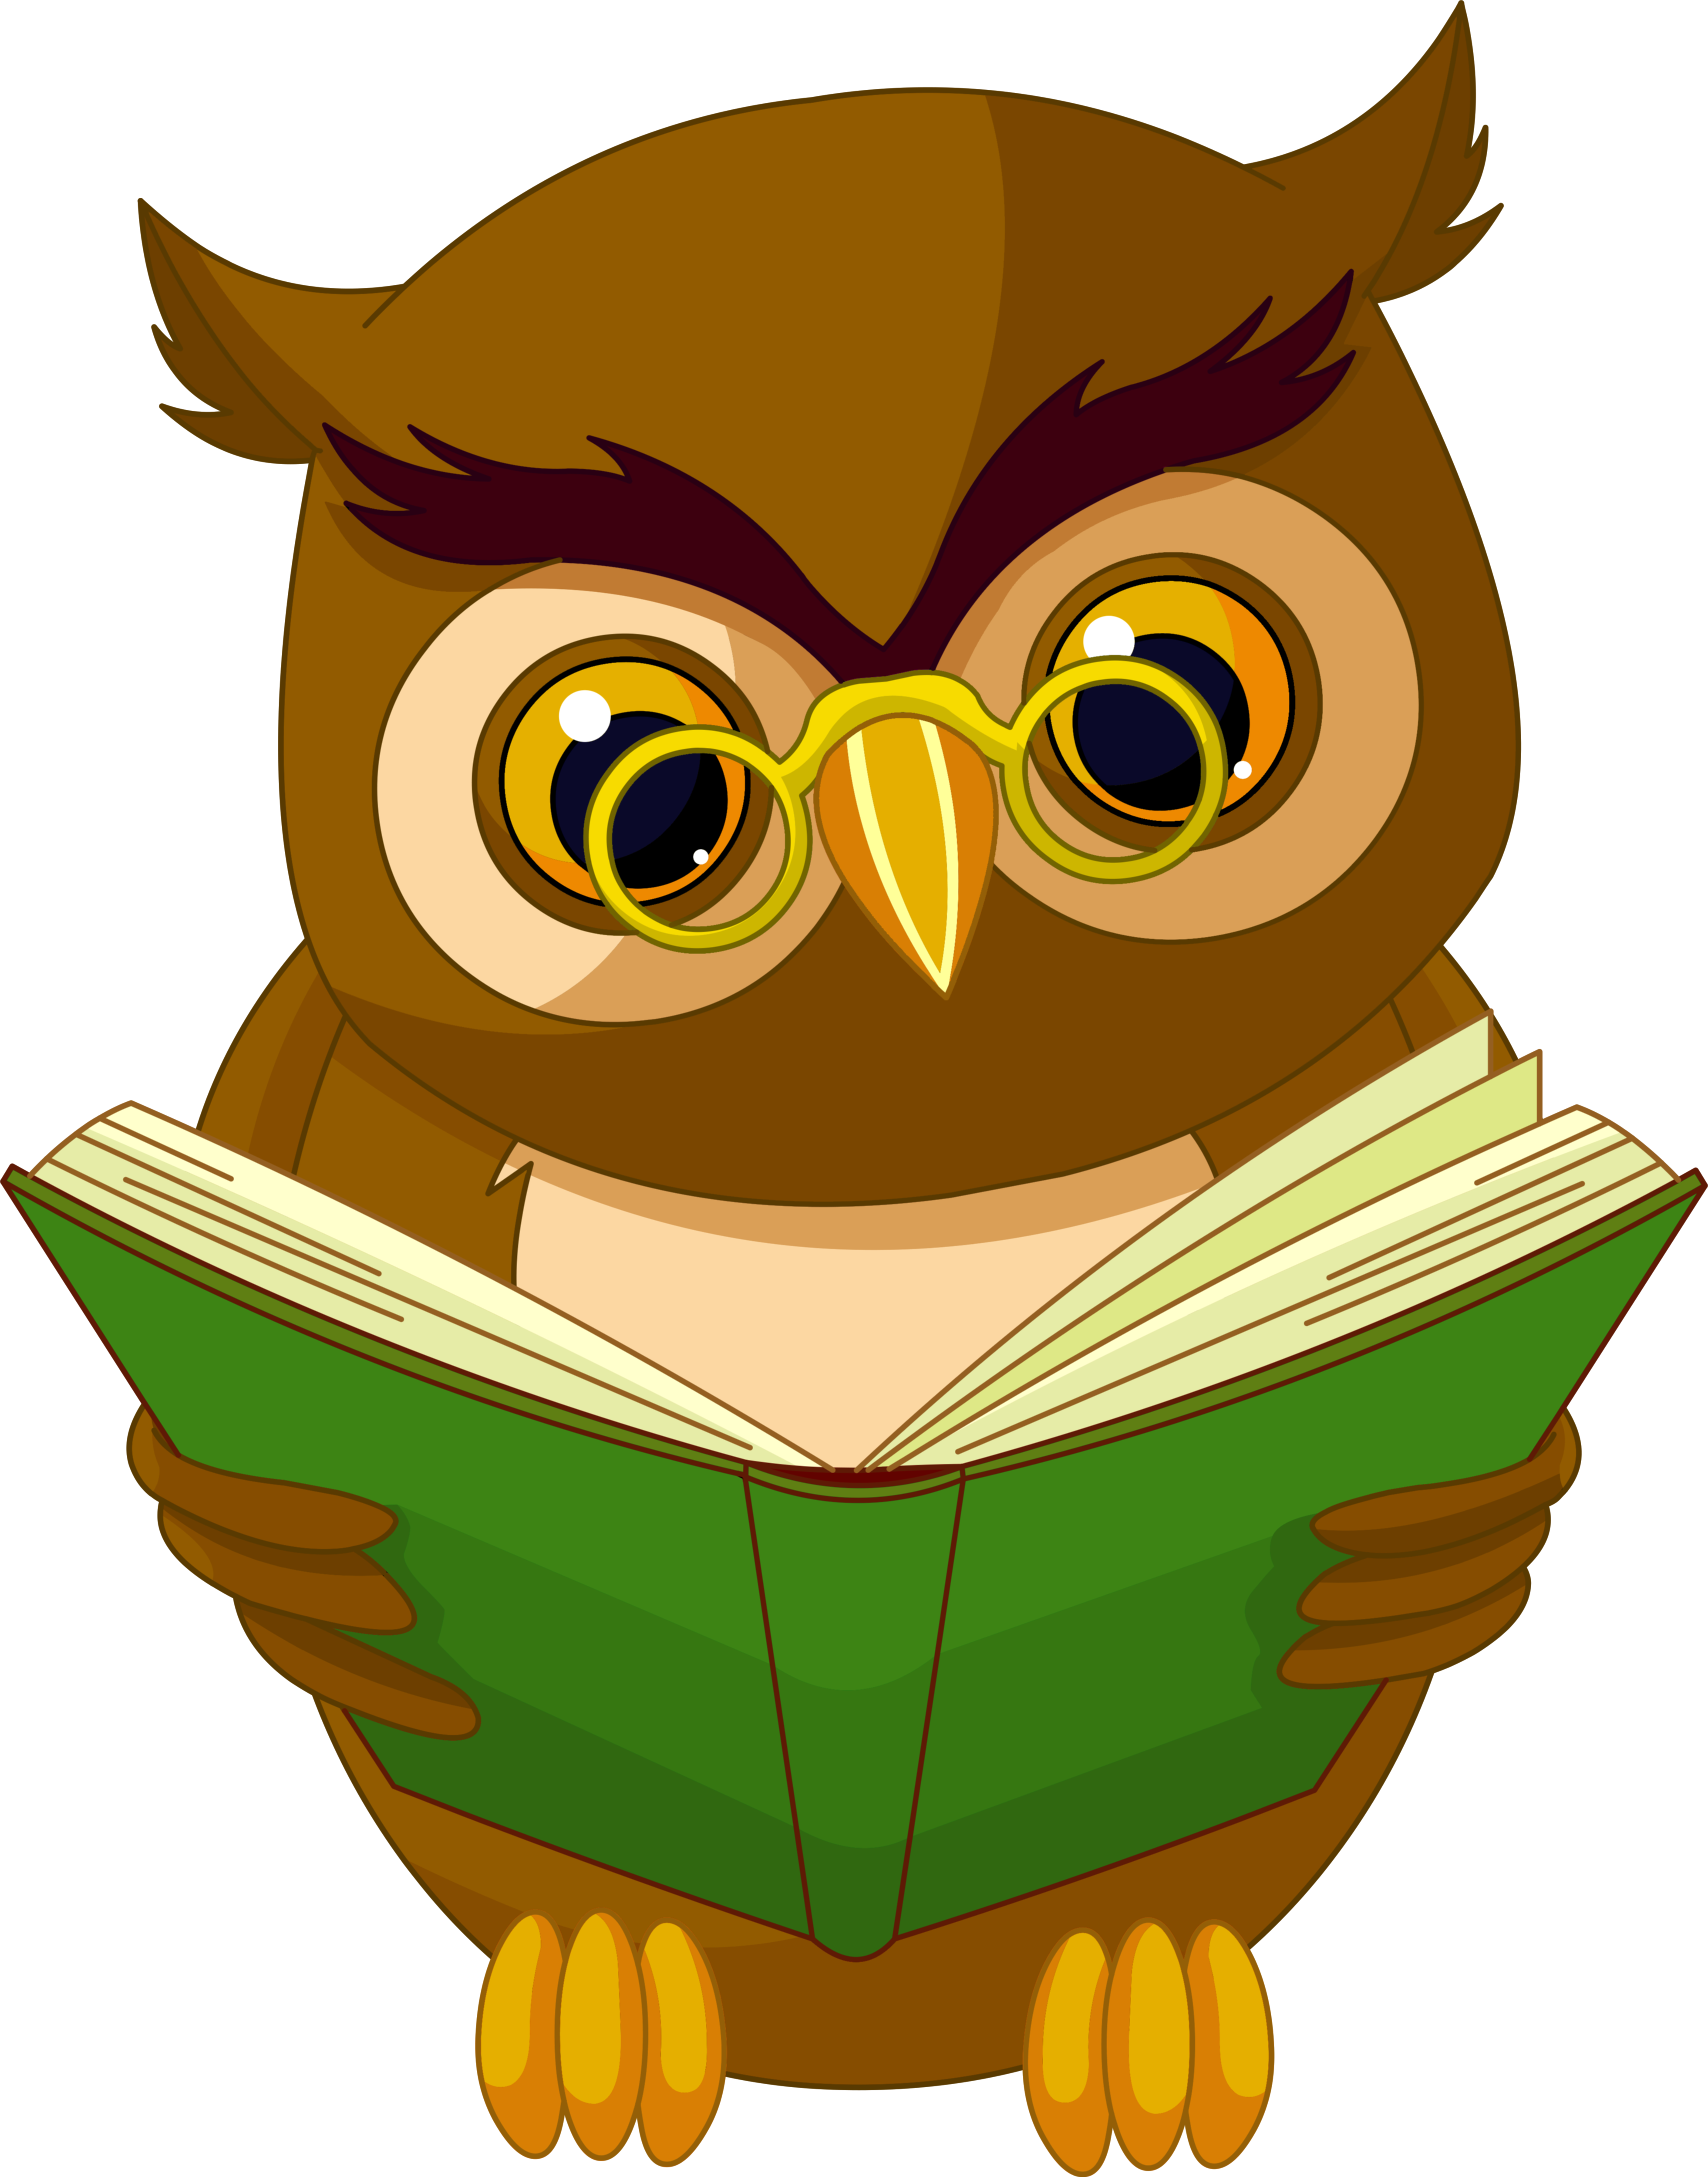 books cliparts background free download best books Baby Owl Clip Art Teacher Owl Clip Art